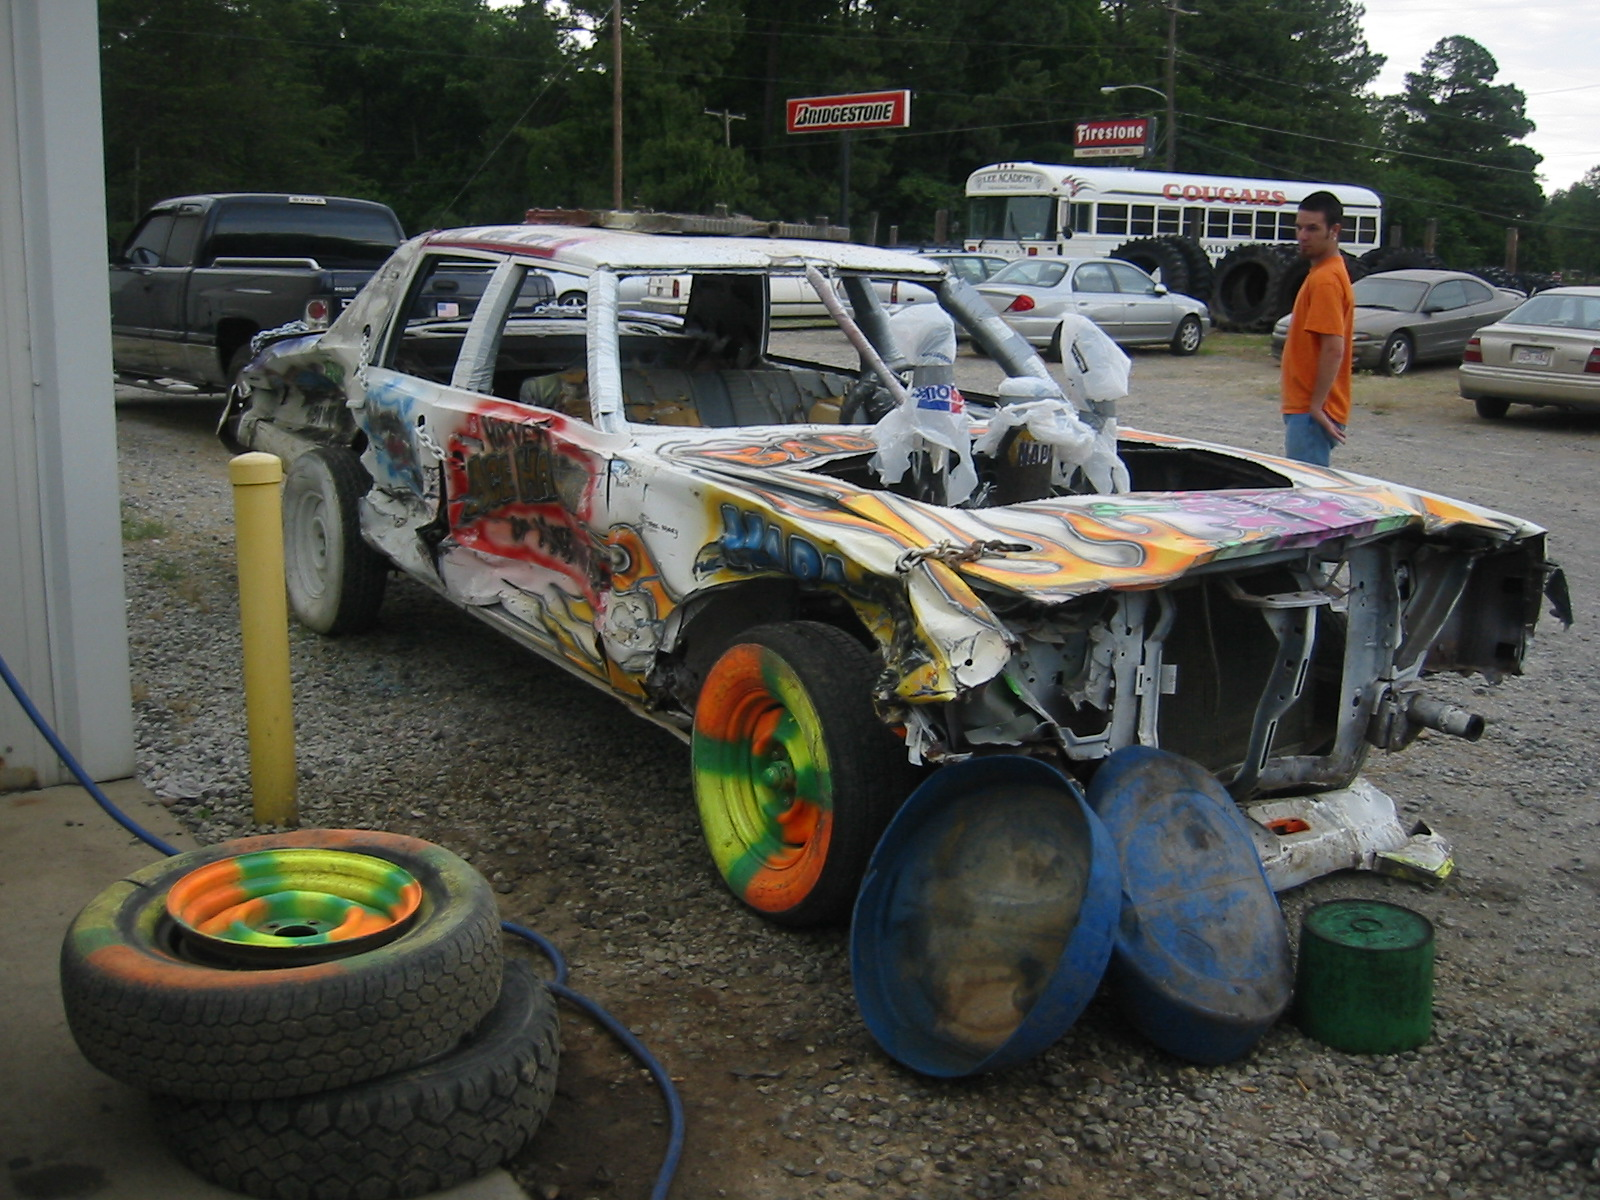 Wrecked Cars For Sale In Cleveland Ohio